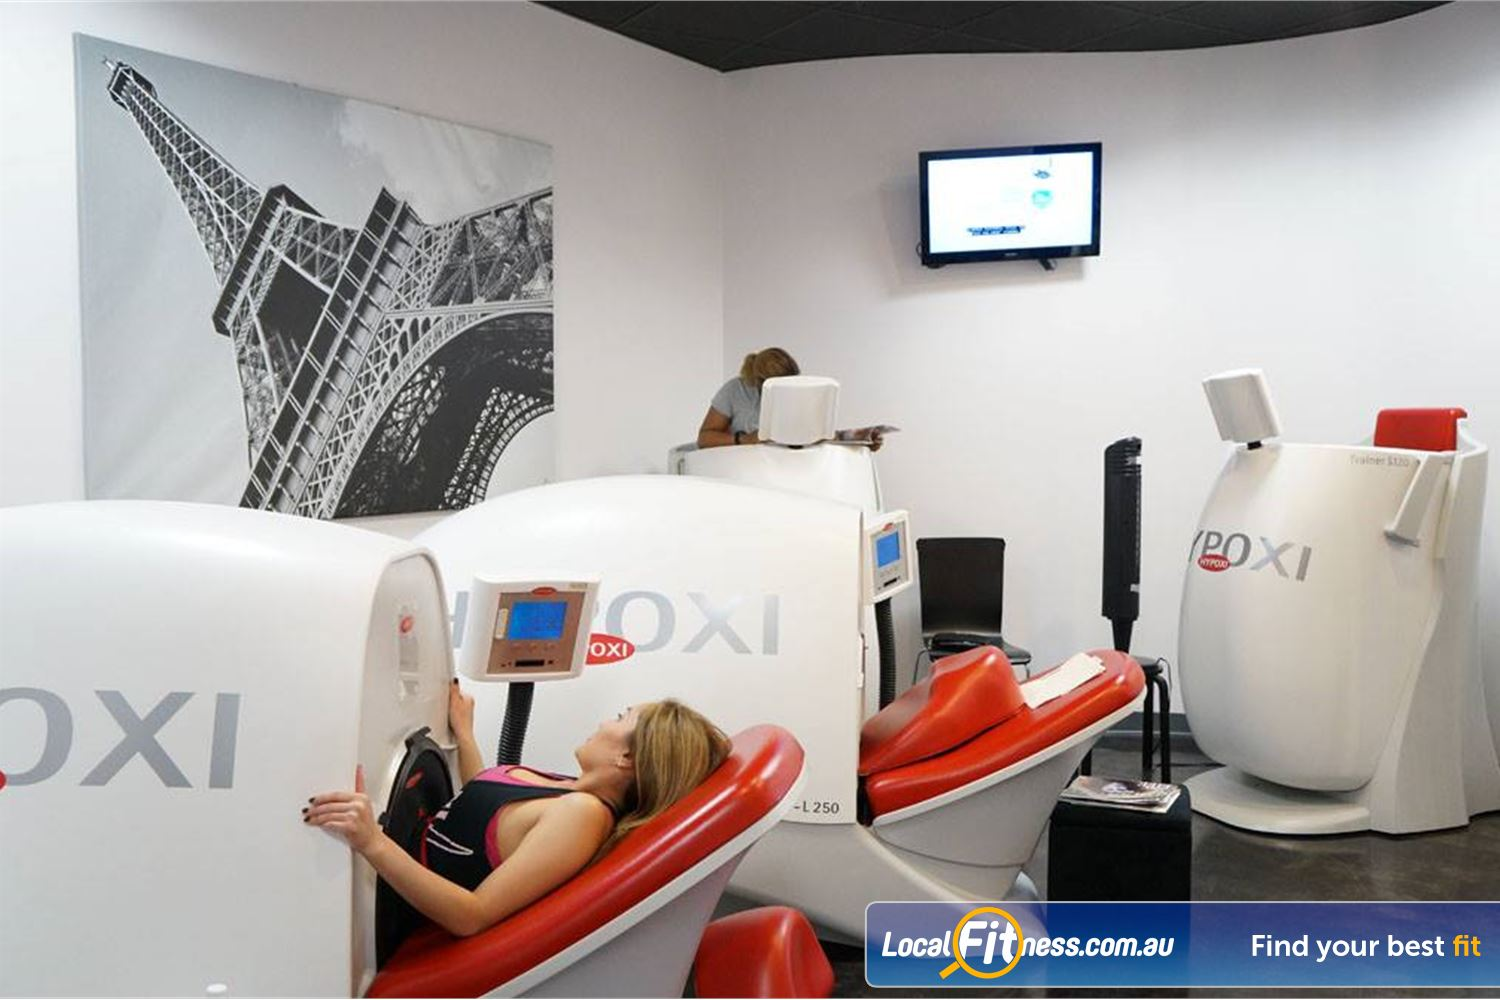 HYPOXI Weight Loss Near Mount Ommaney Our HYPOXI Jindalee weight-loss is personalised catering 3-4 people at a time.